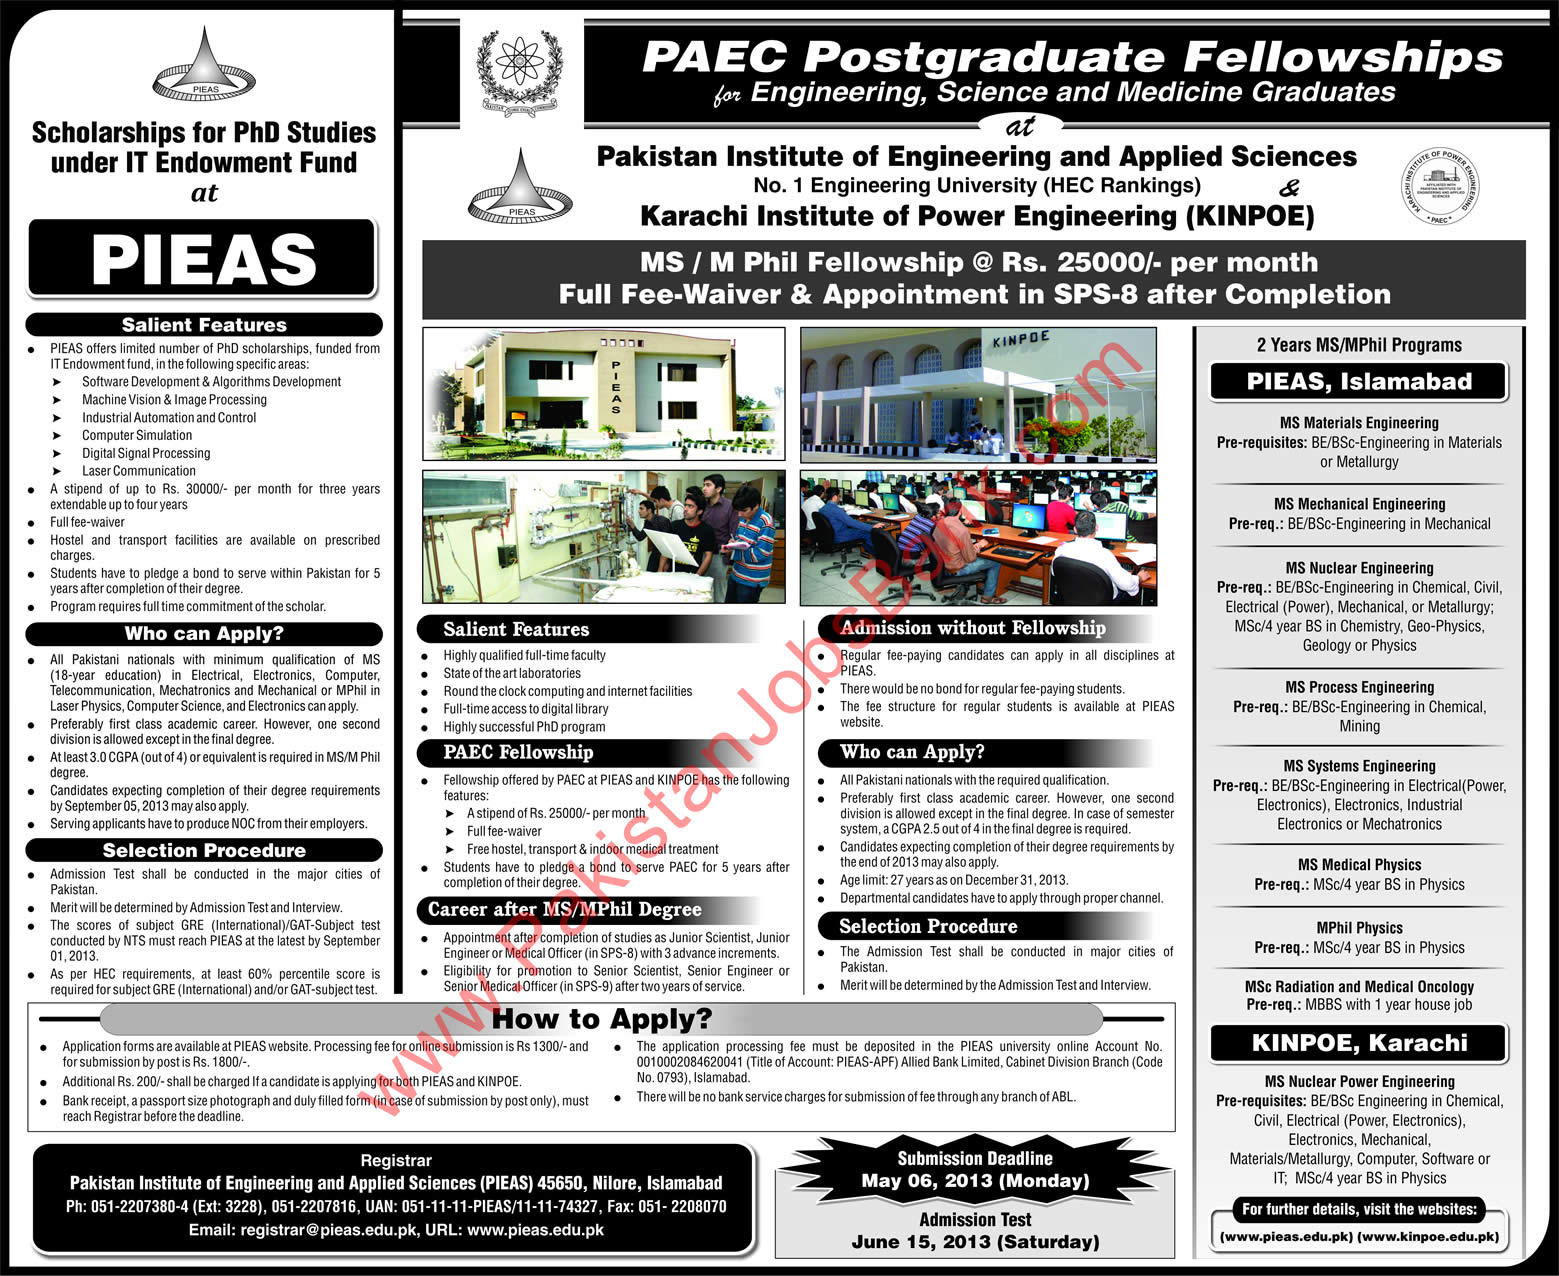 Pakistan Atomic Energy Commission Postgraduate Fellowships 2013 at PIEAS / KINPOE Advertisement